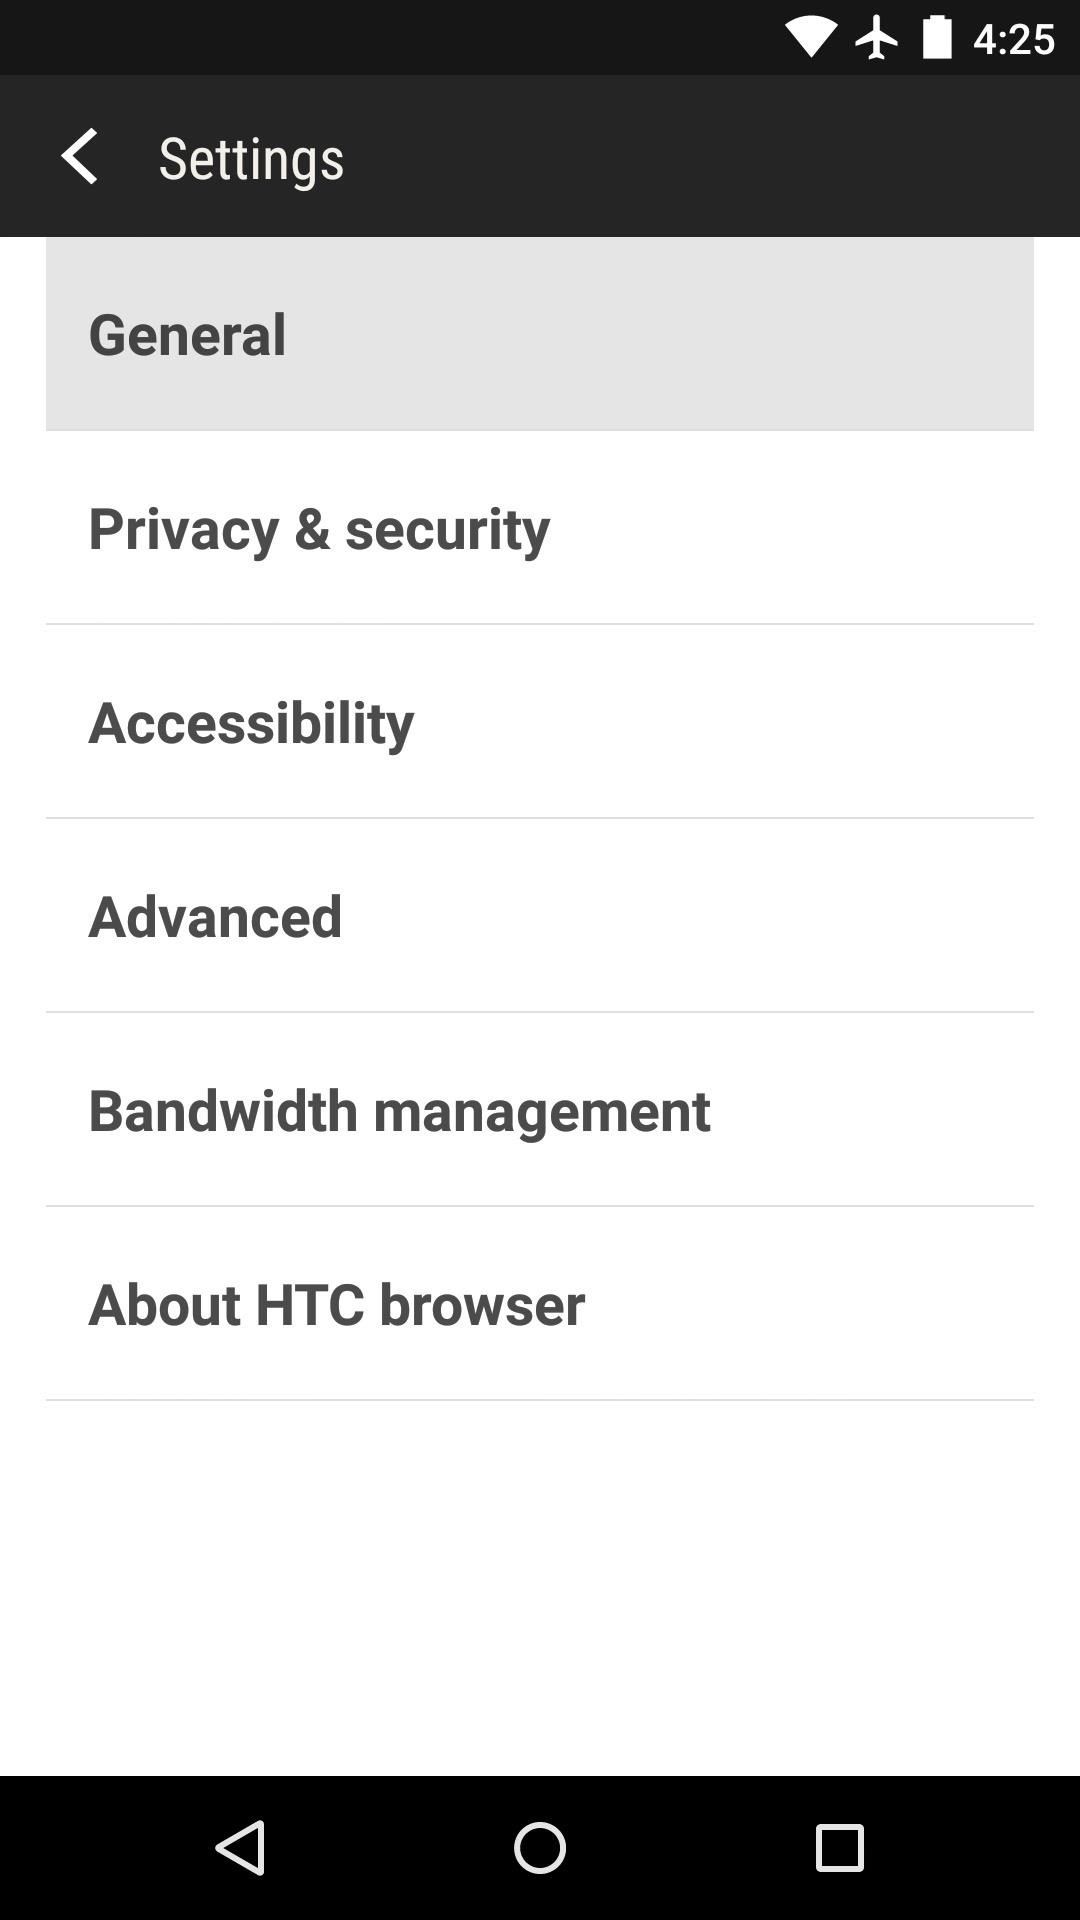 How to Install HTC's Sense Browser on Any Lollipop Device